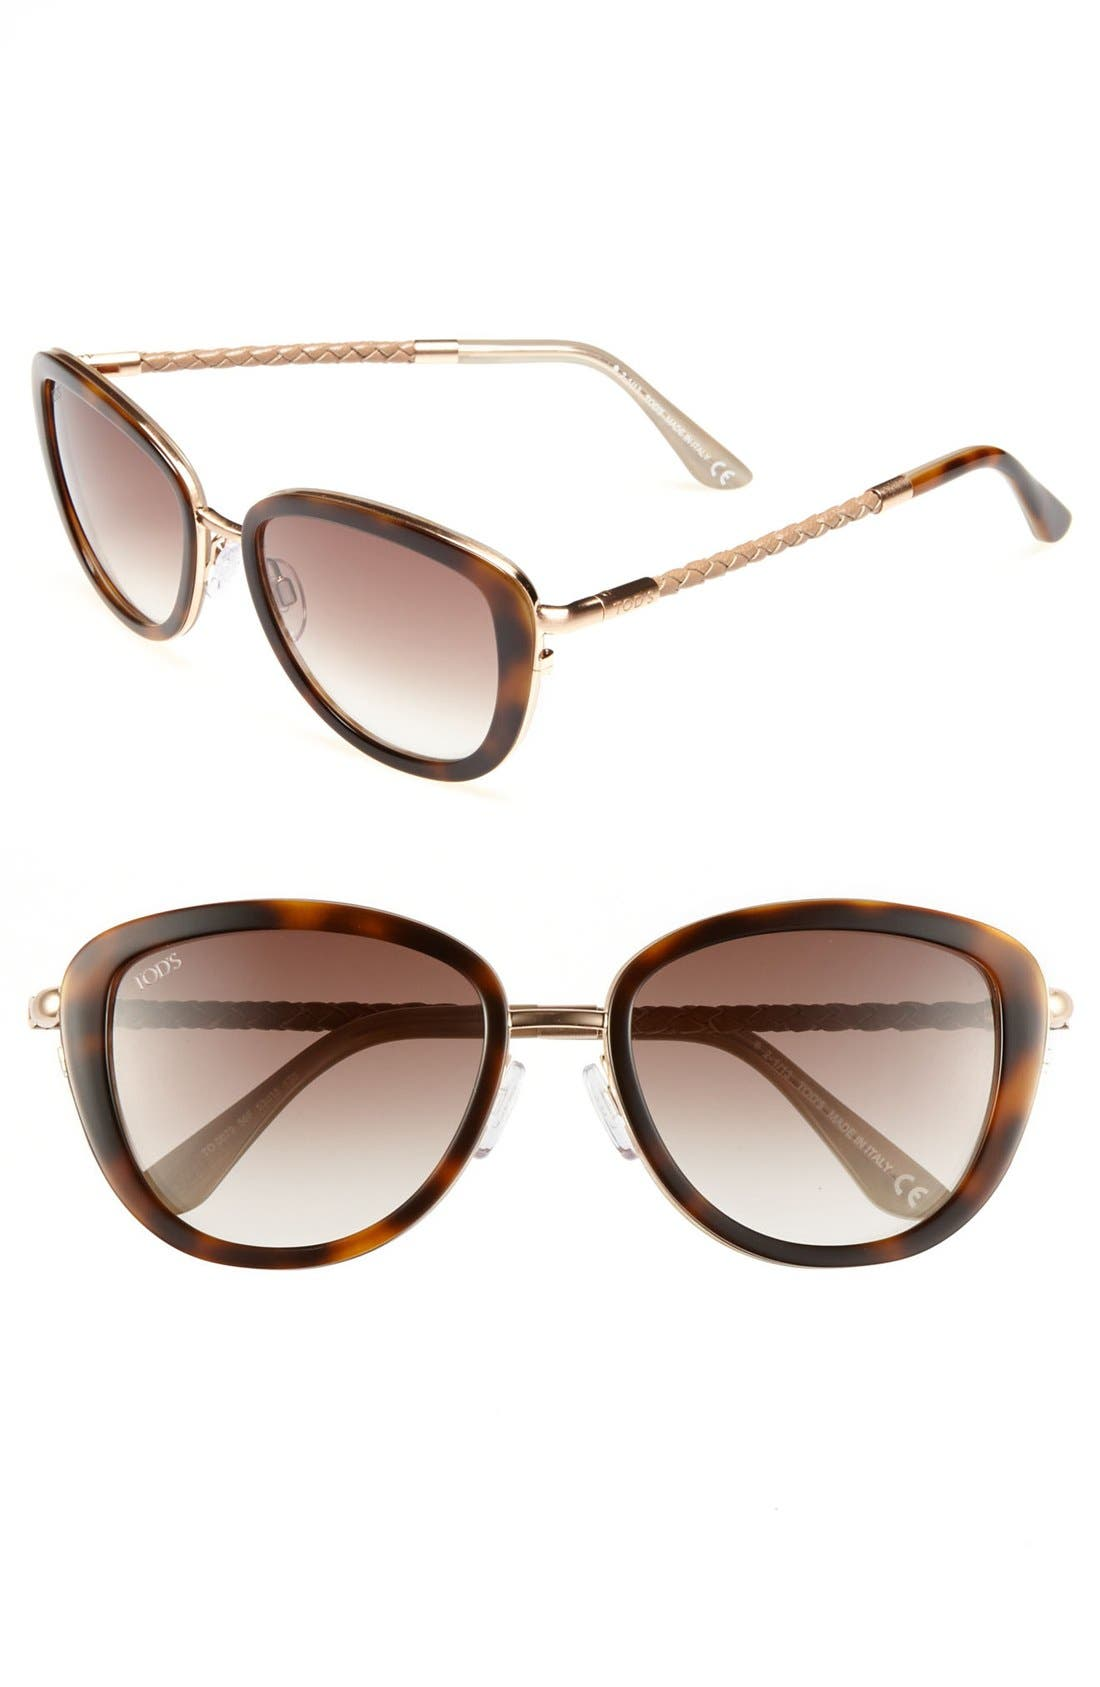 Main Image - Tod's 53mm Woven Leather Temple Sunglasses